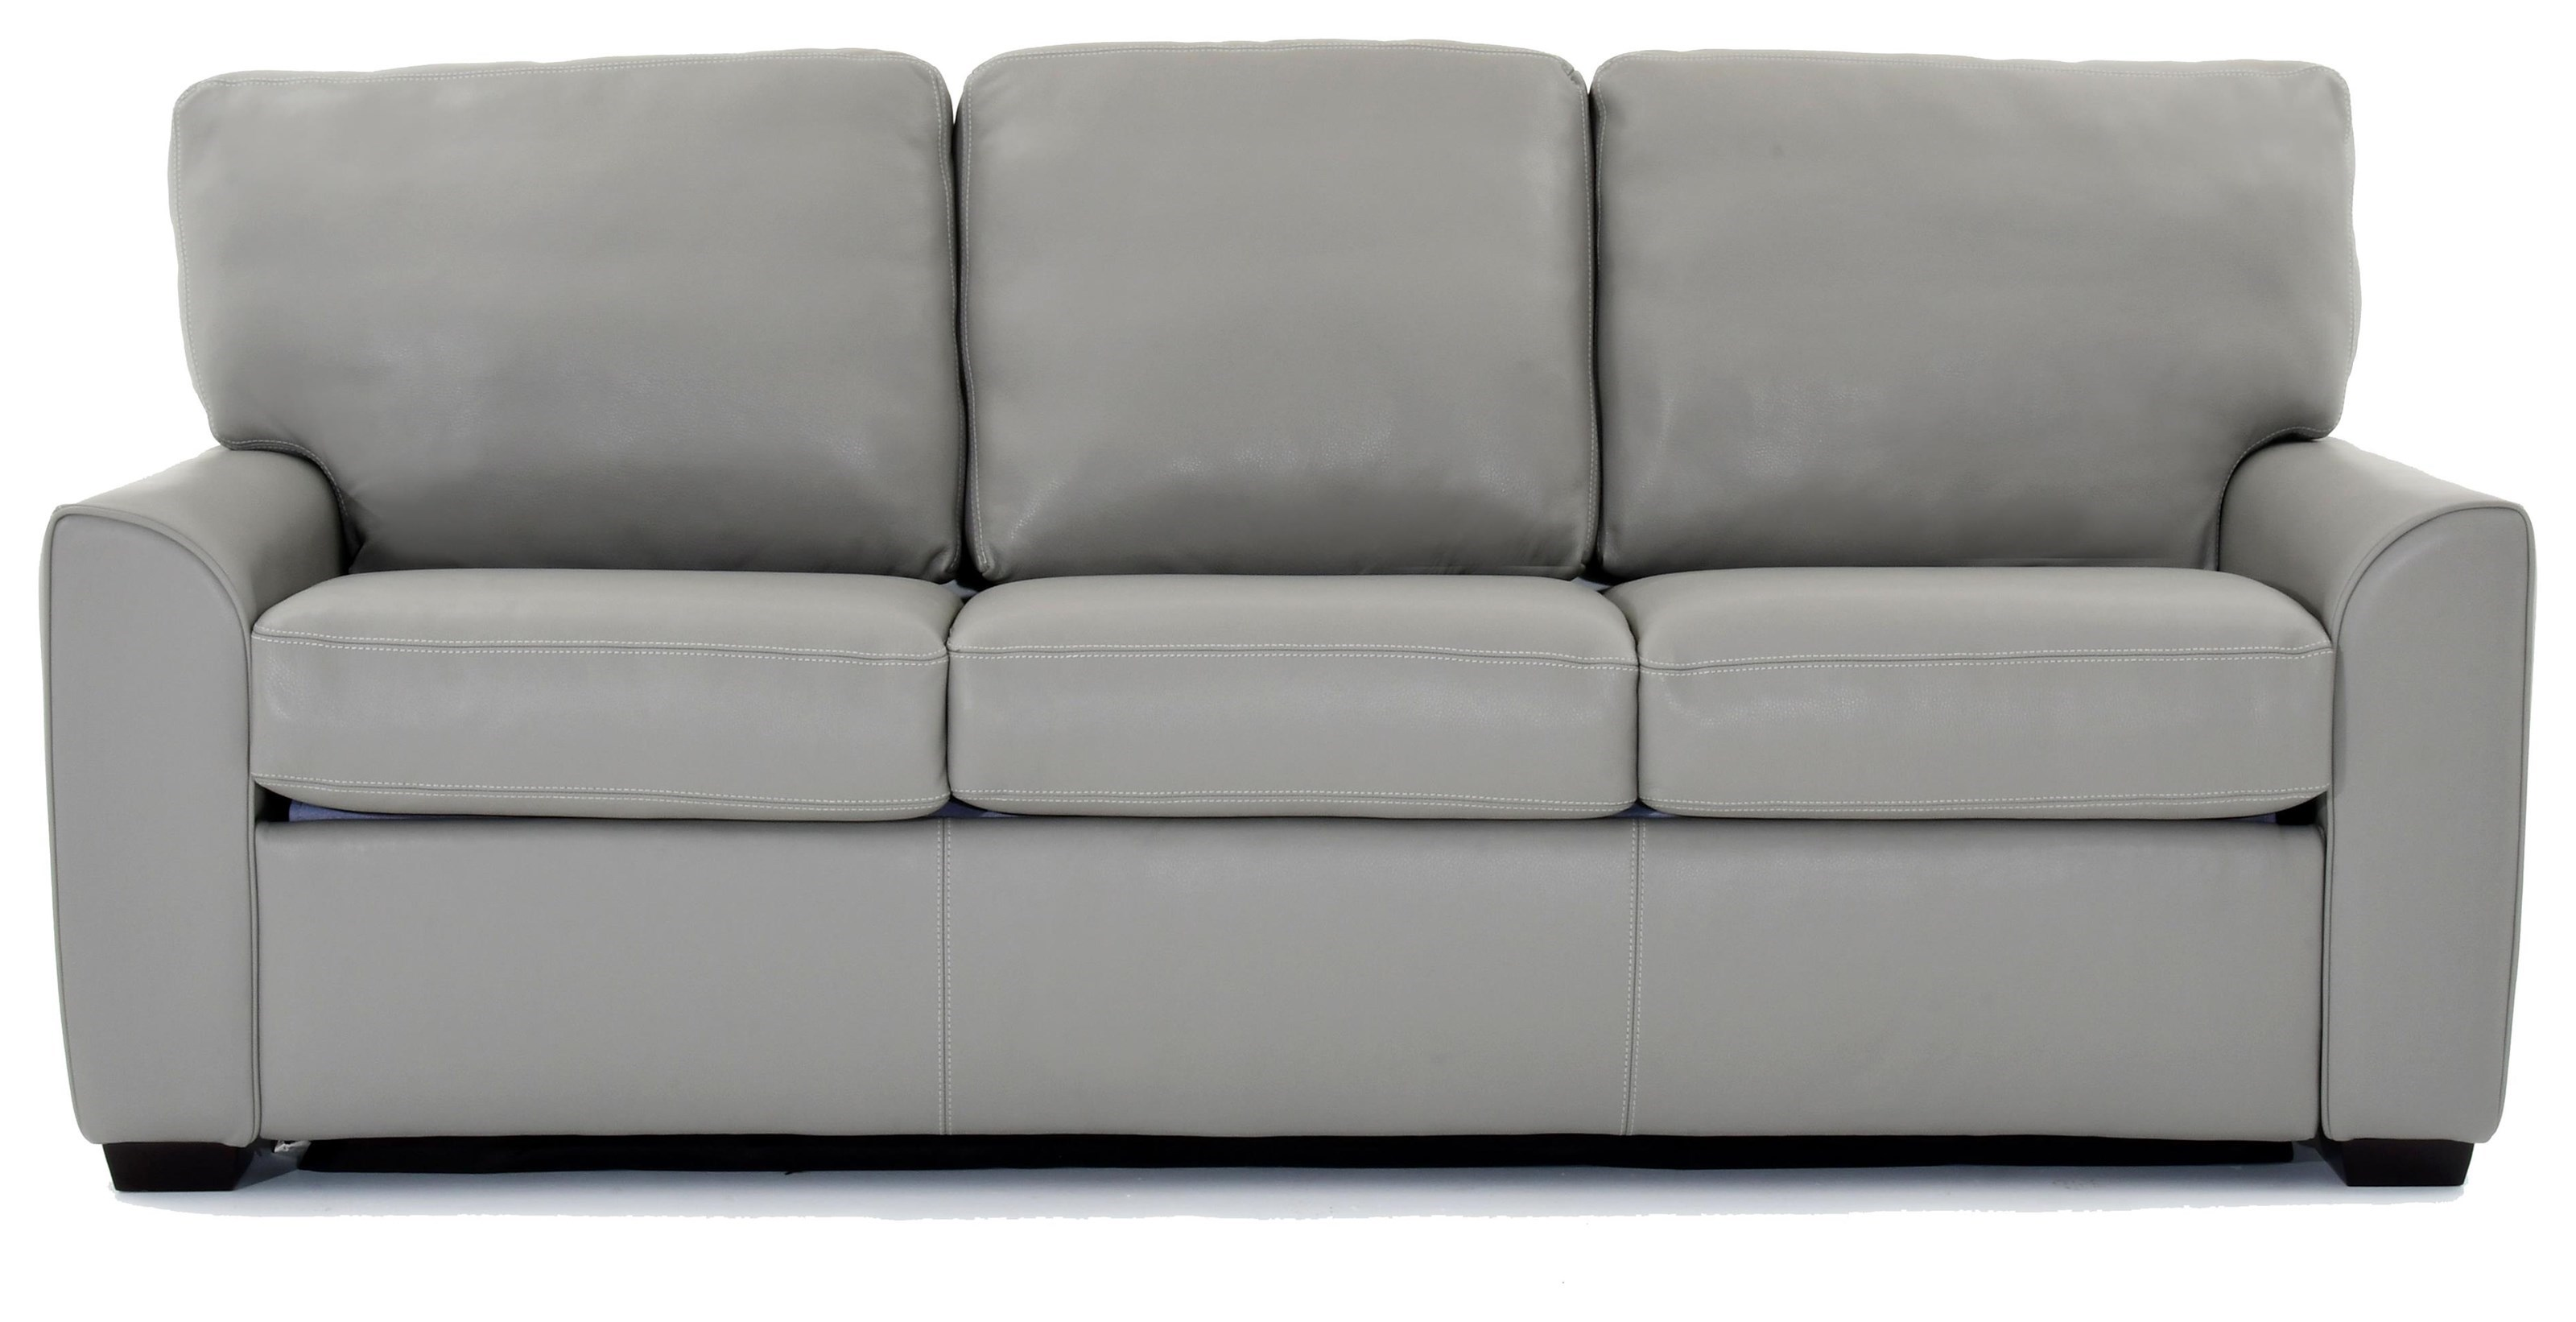 American Leather Klein Kle So3 Qp Queen Size Comfort Sleeper